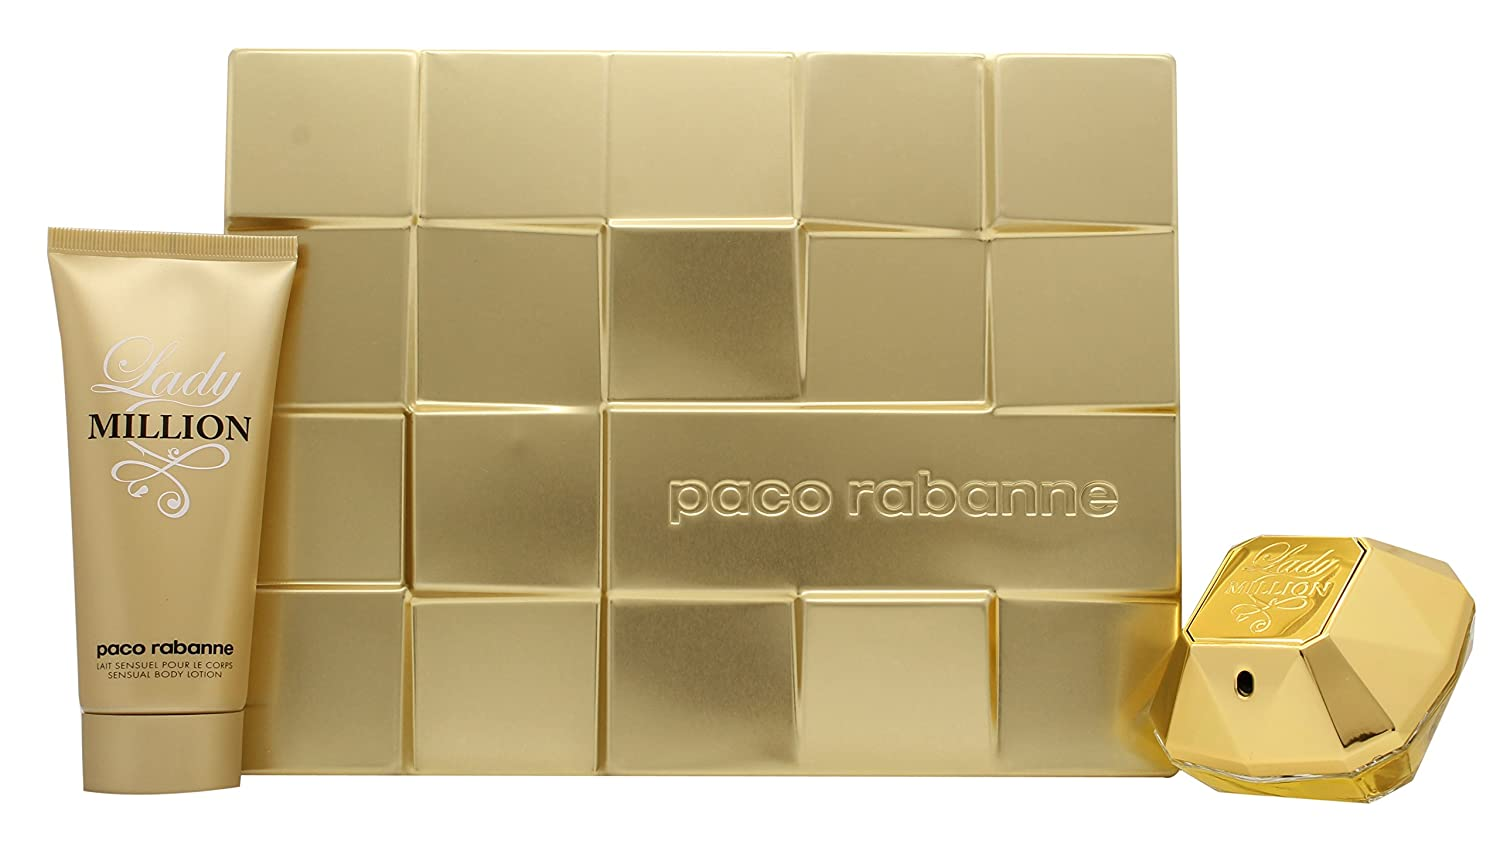 Paco Rabanne Lady Million Gift Set - 2 Piece: Amazon.co.uk: Health ...